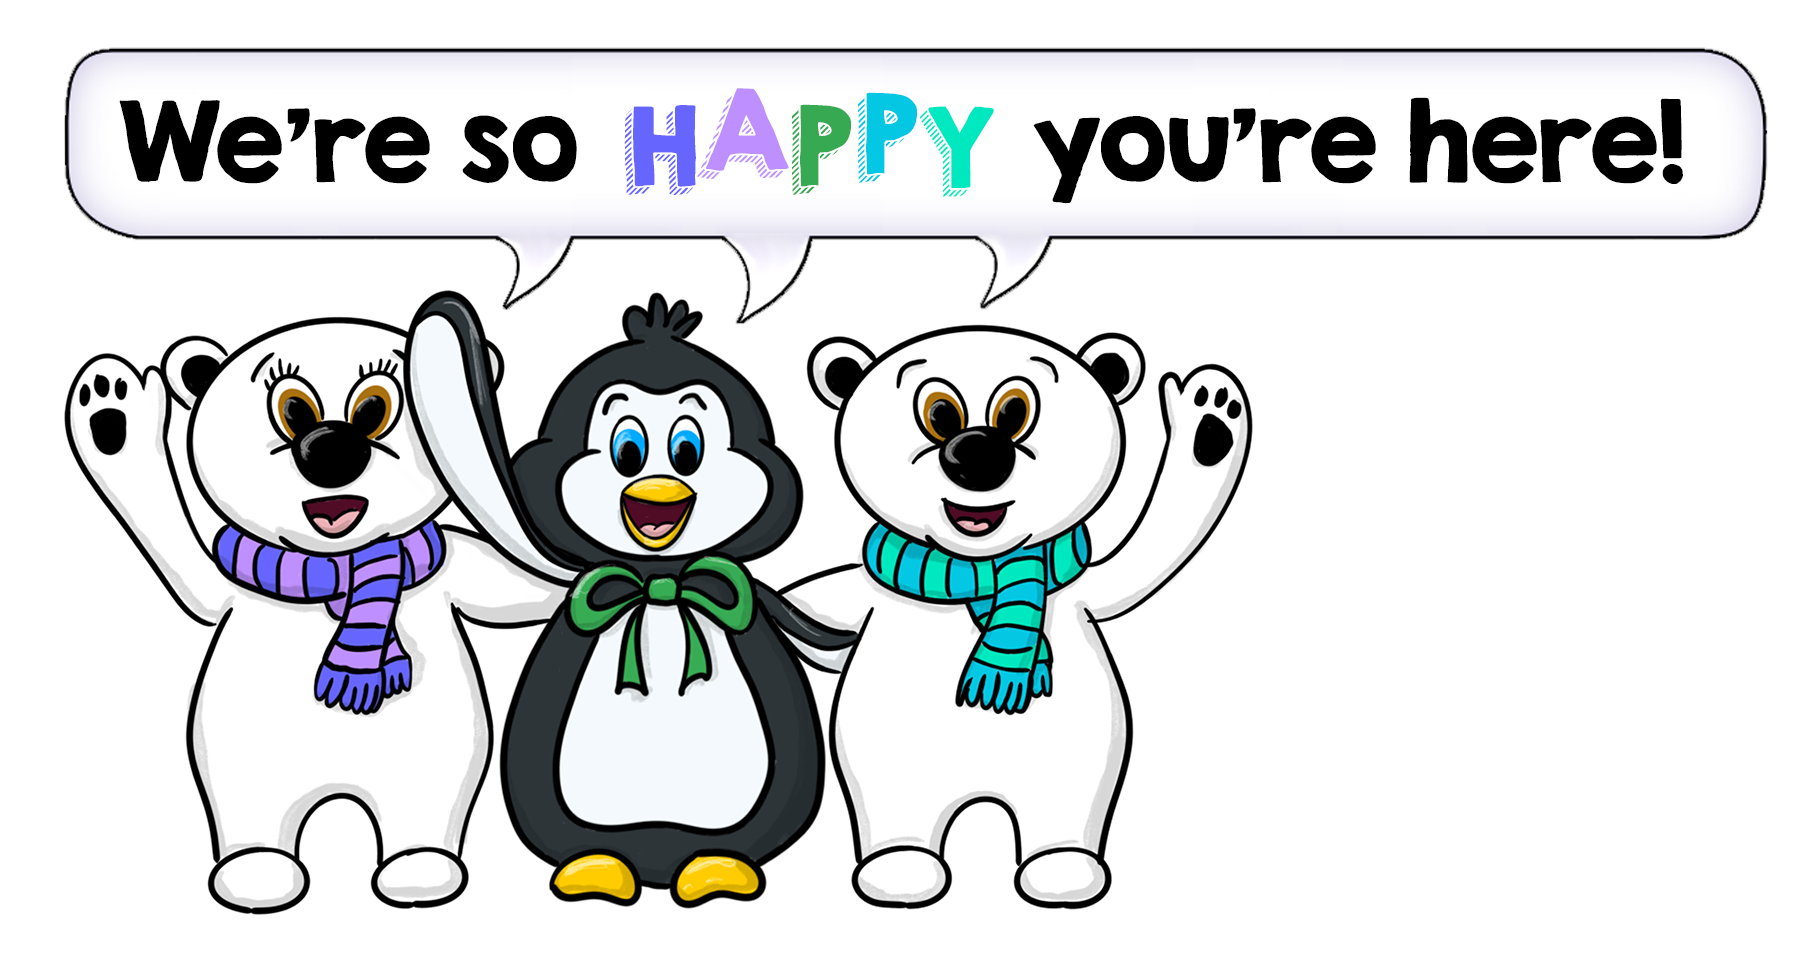 Cascade Method characters saying We're so happy you're here